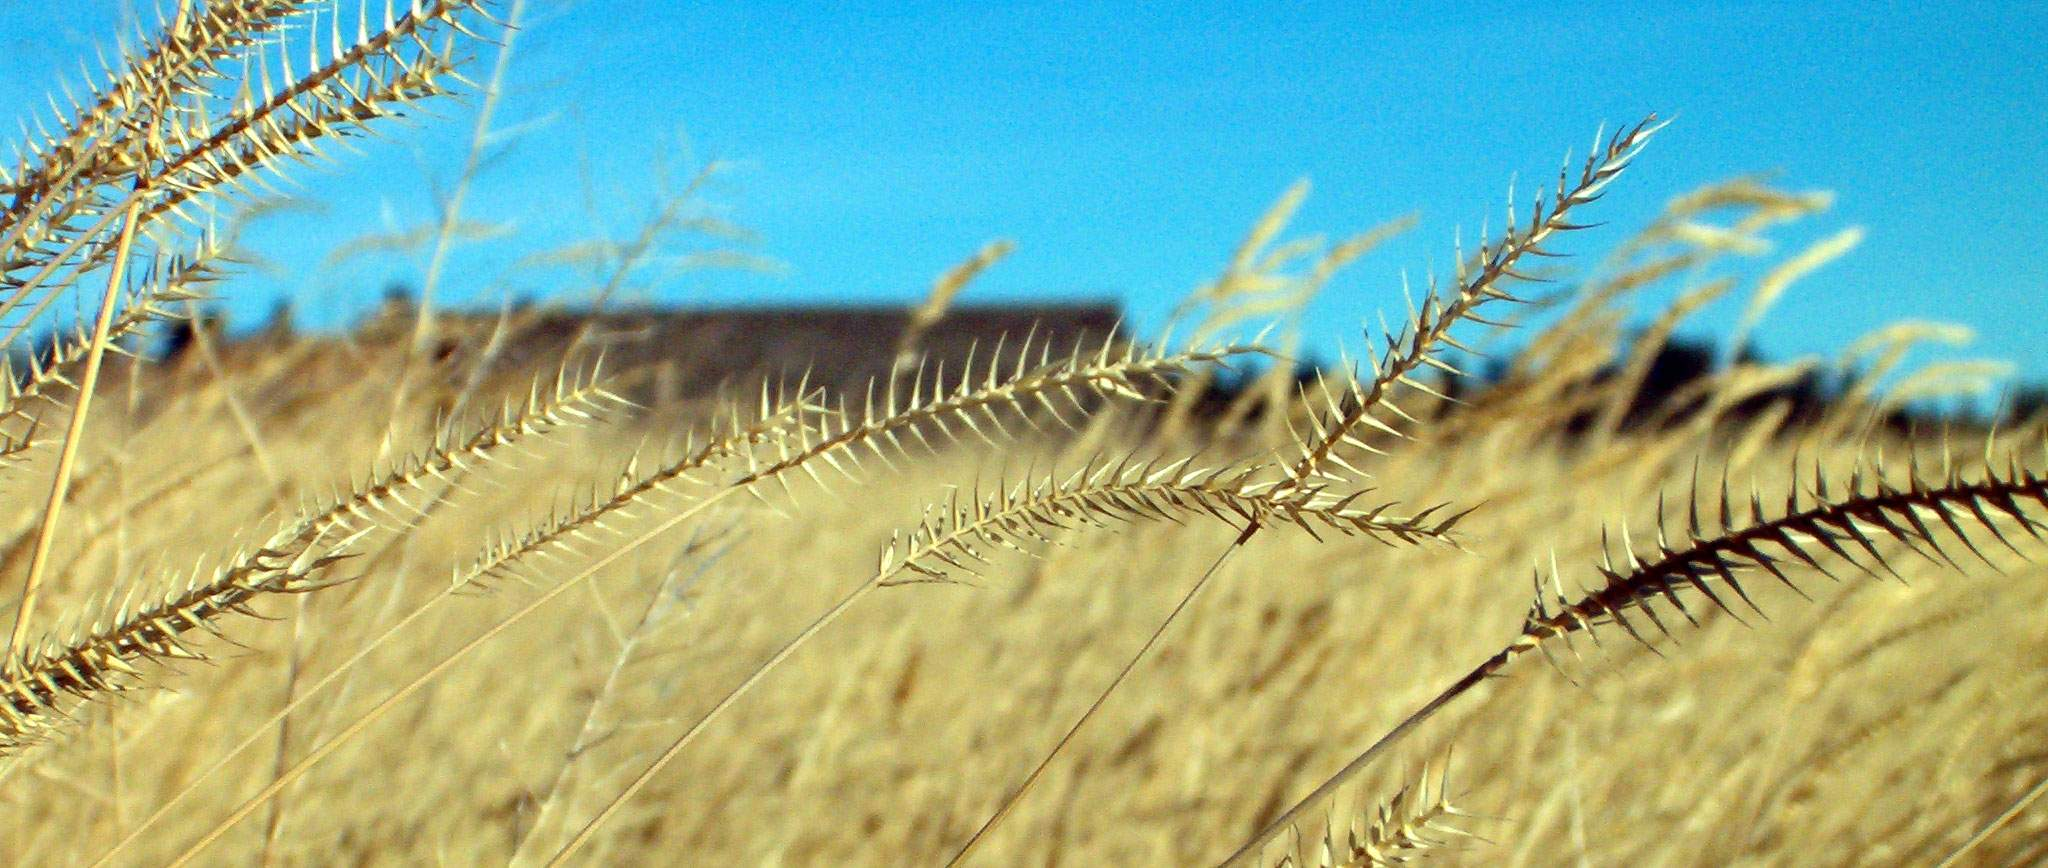 A close up of wheat stalks in the sun